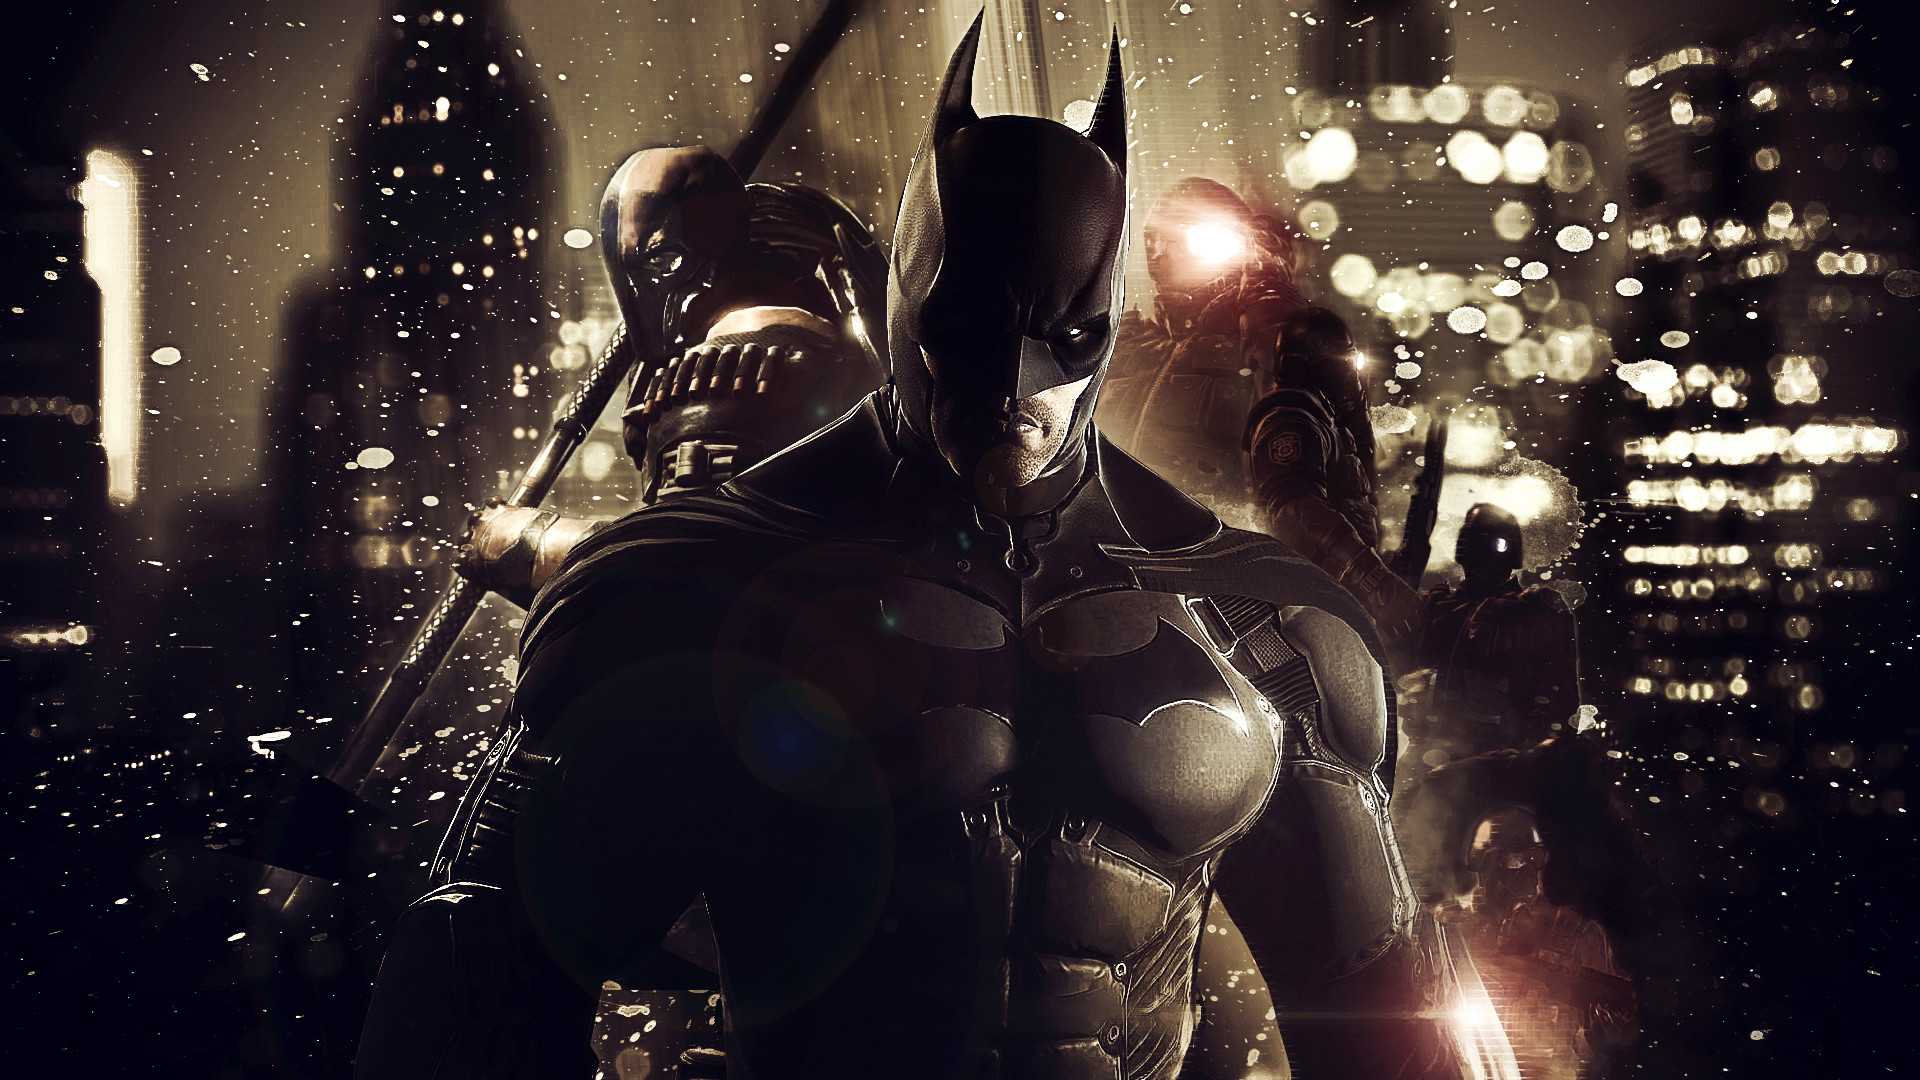 1920x1080 Batman hero Games 3D Graphics j wallpaper |  | 195698 | WallpaperUP